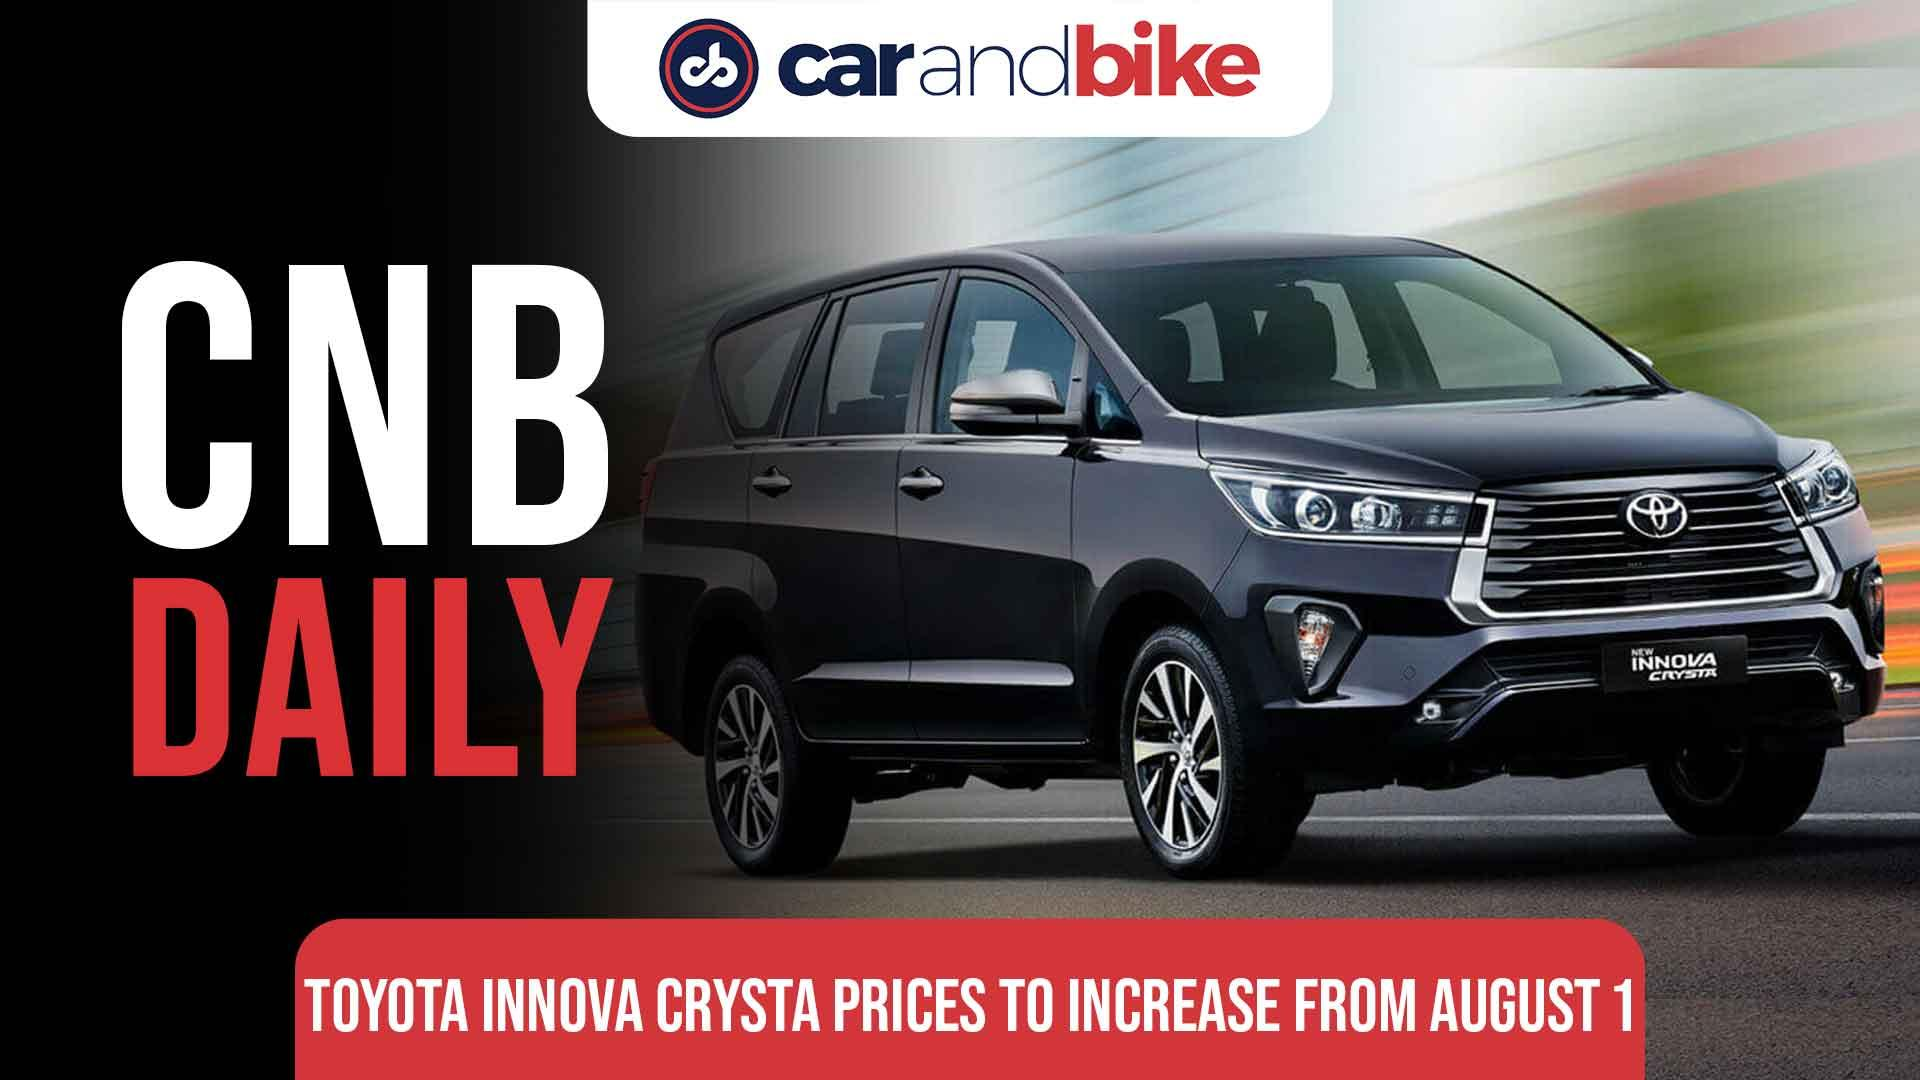 Toyota Innova Crysta Prices To Increase From August